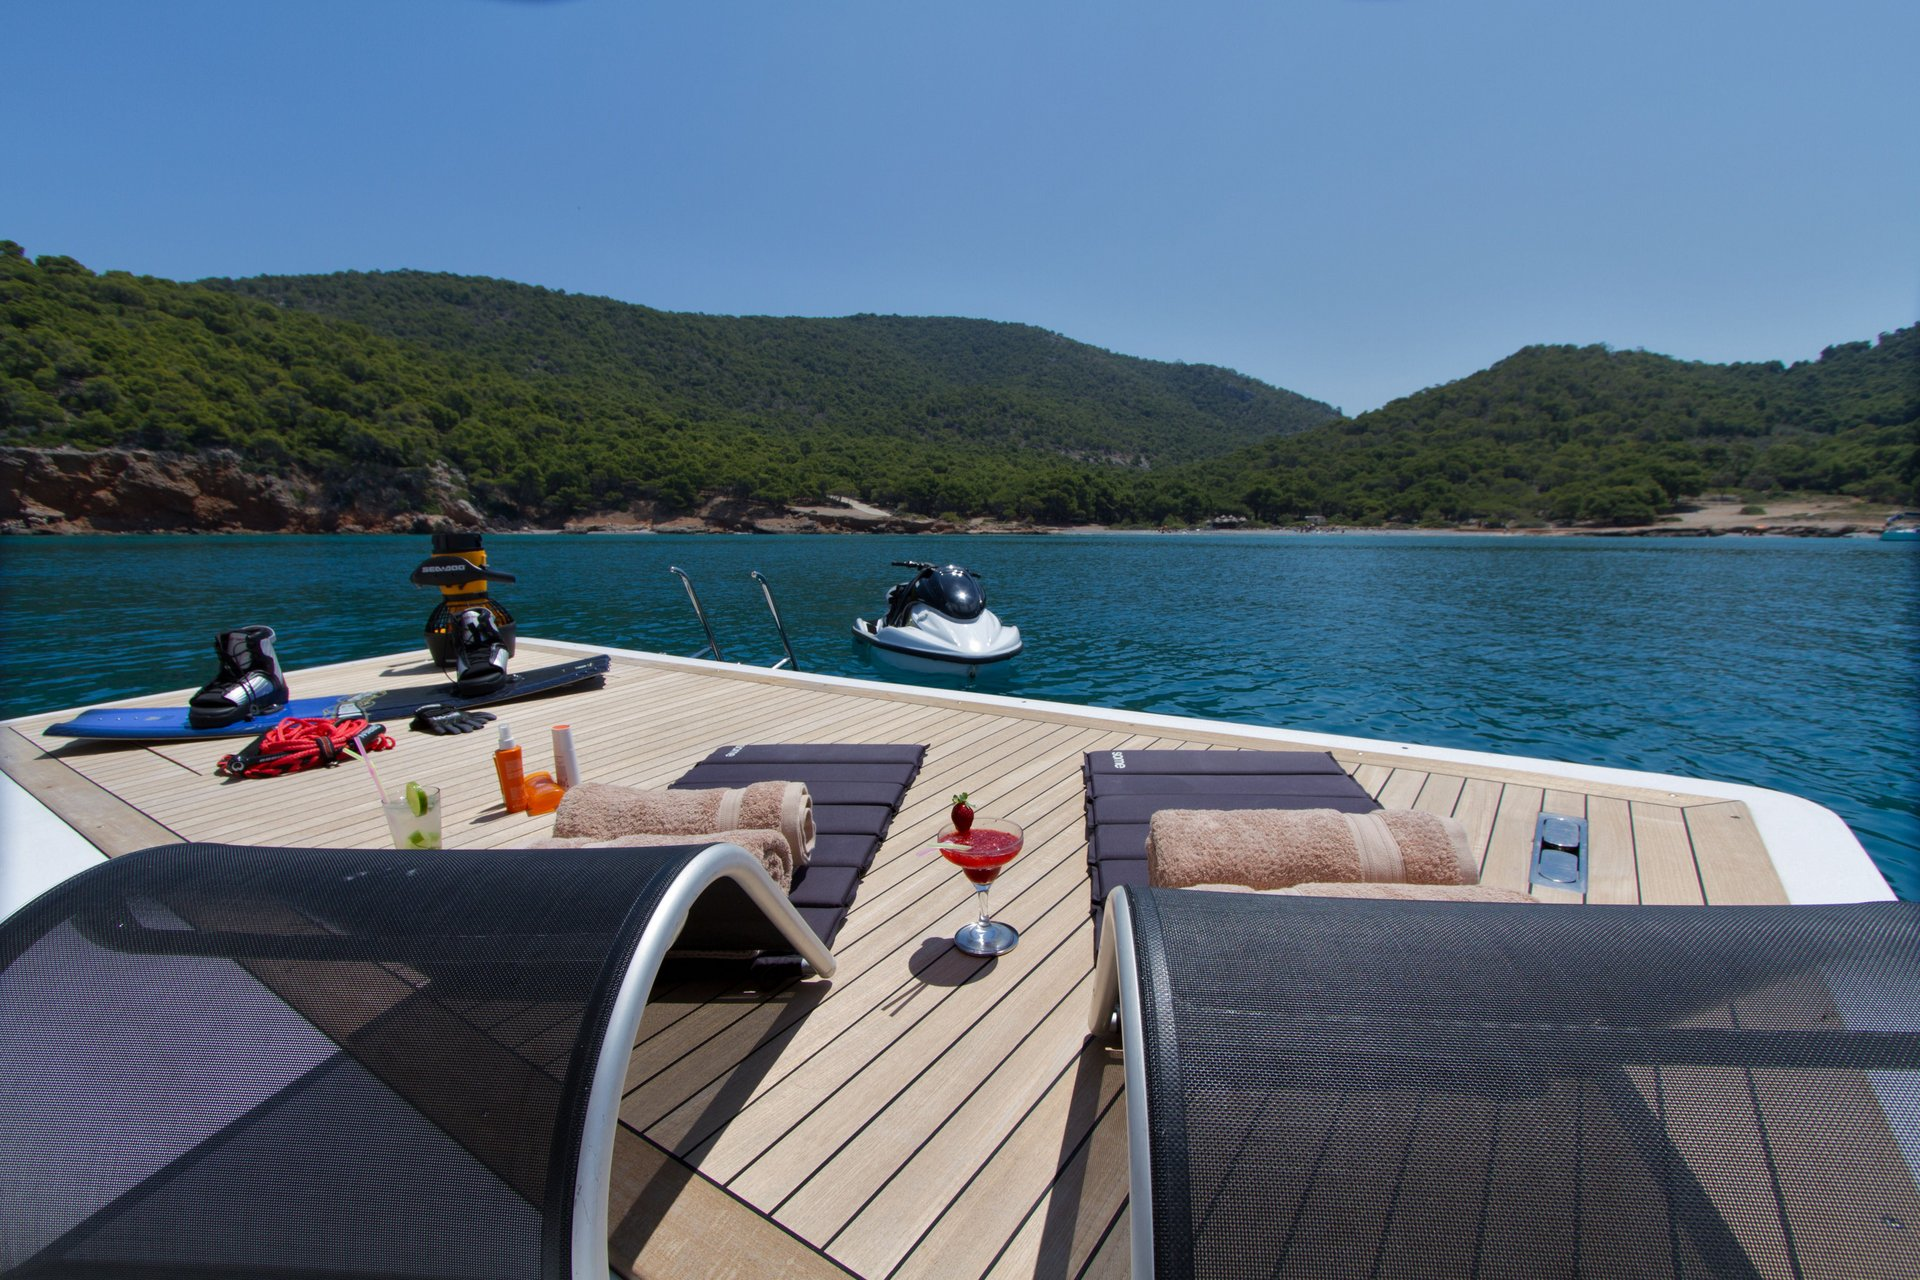 M/Y MABROUK yacht for charter sun lounging